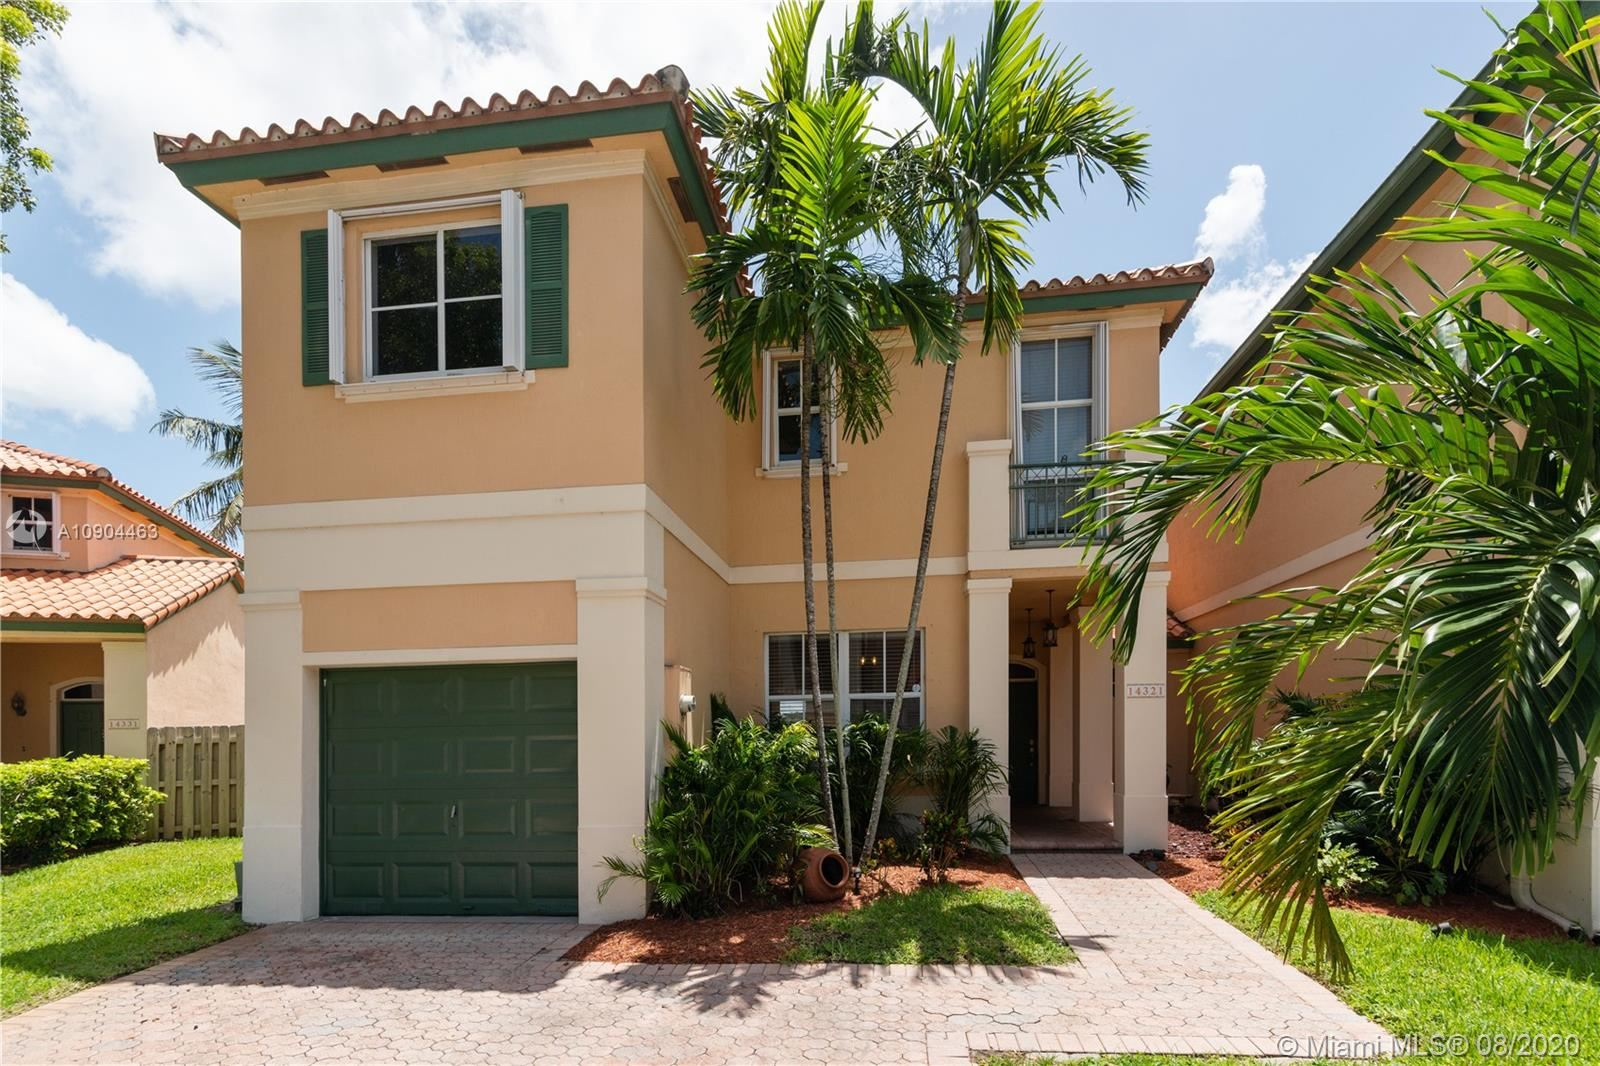 14321 NW 83rd Ave, Miami Lakes, FL 33016 - #: A10904463